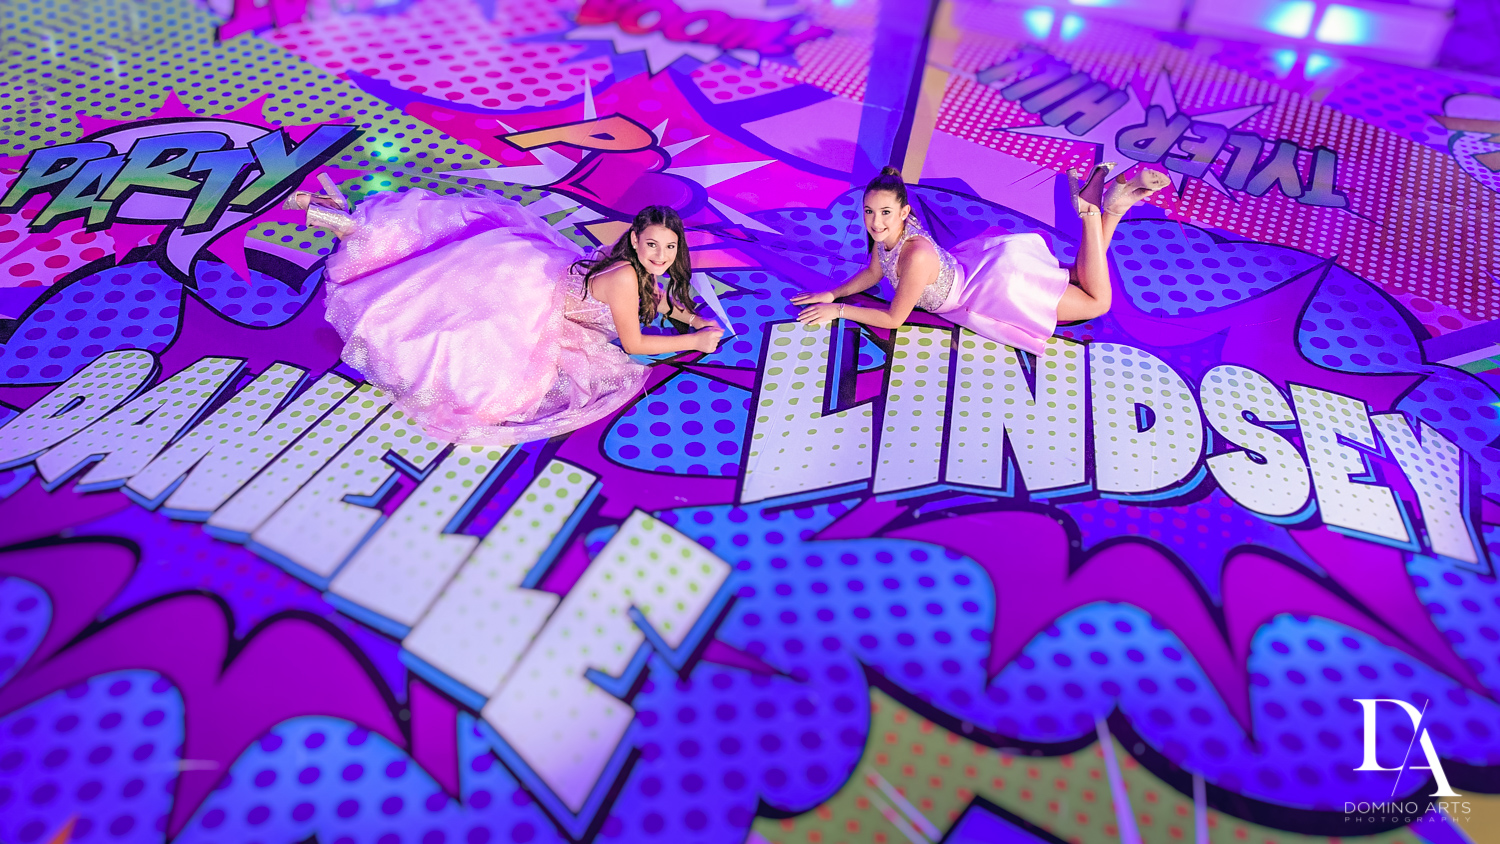 Pop art bnot mitzvah pictures by domino arts photography